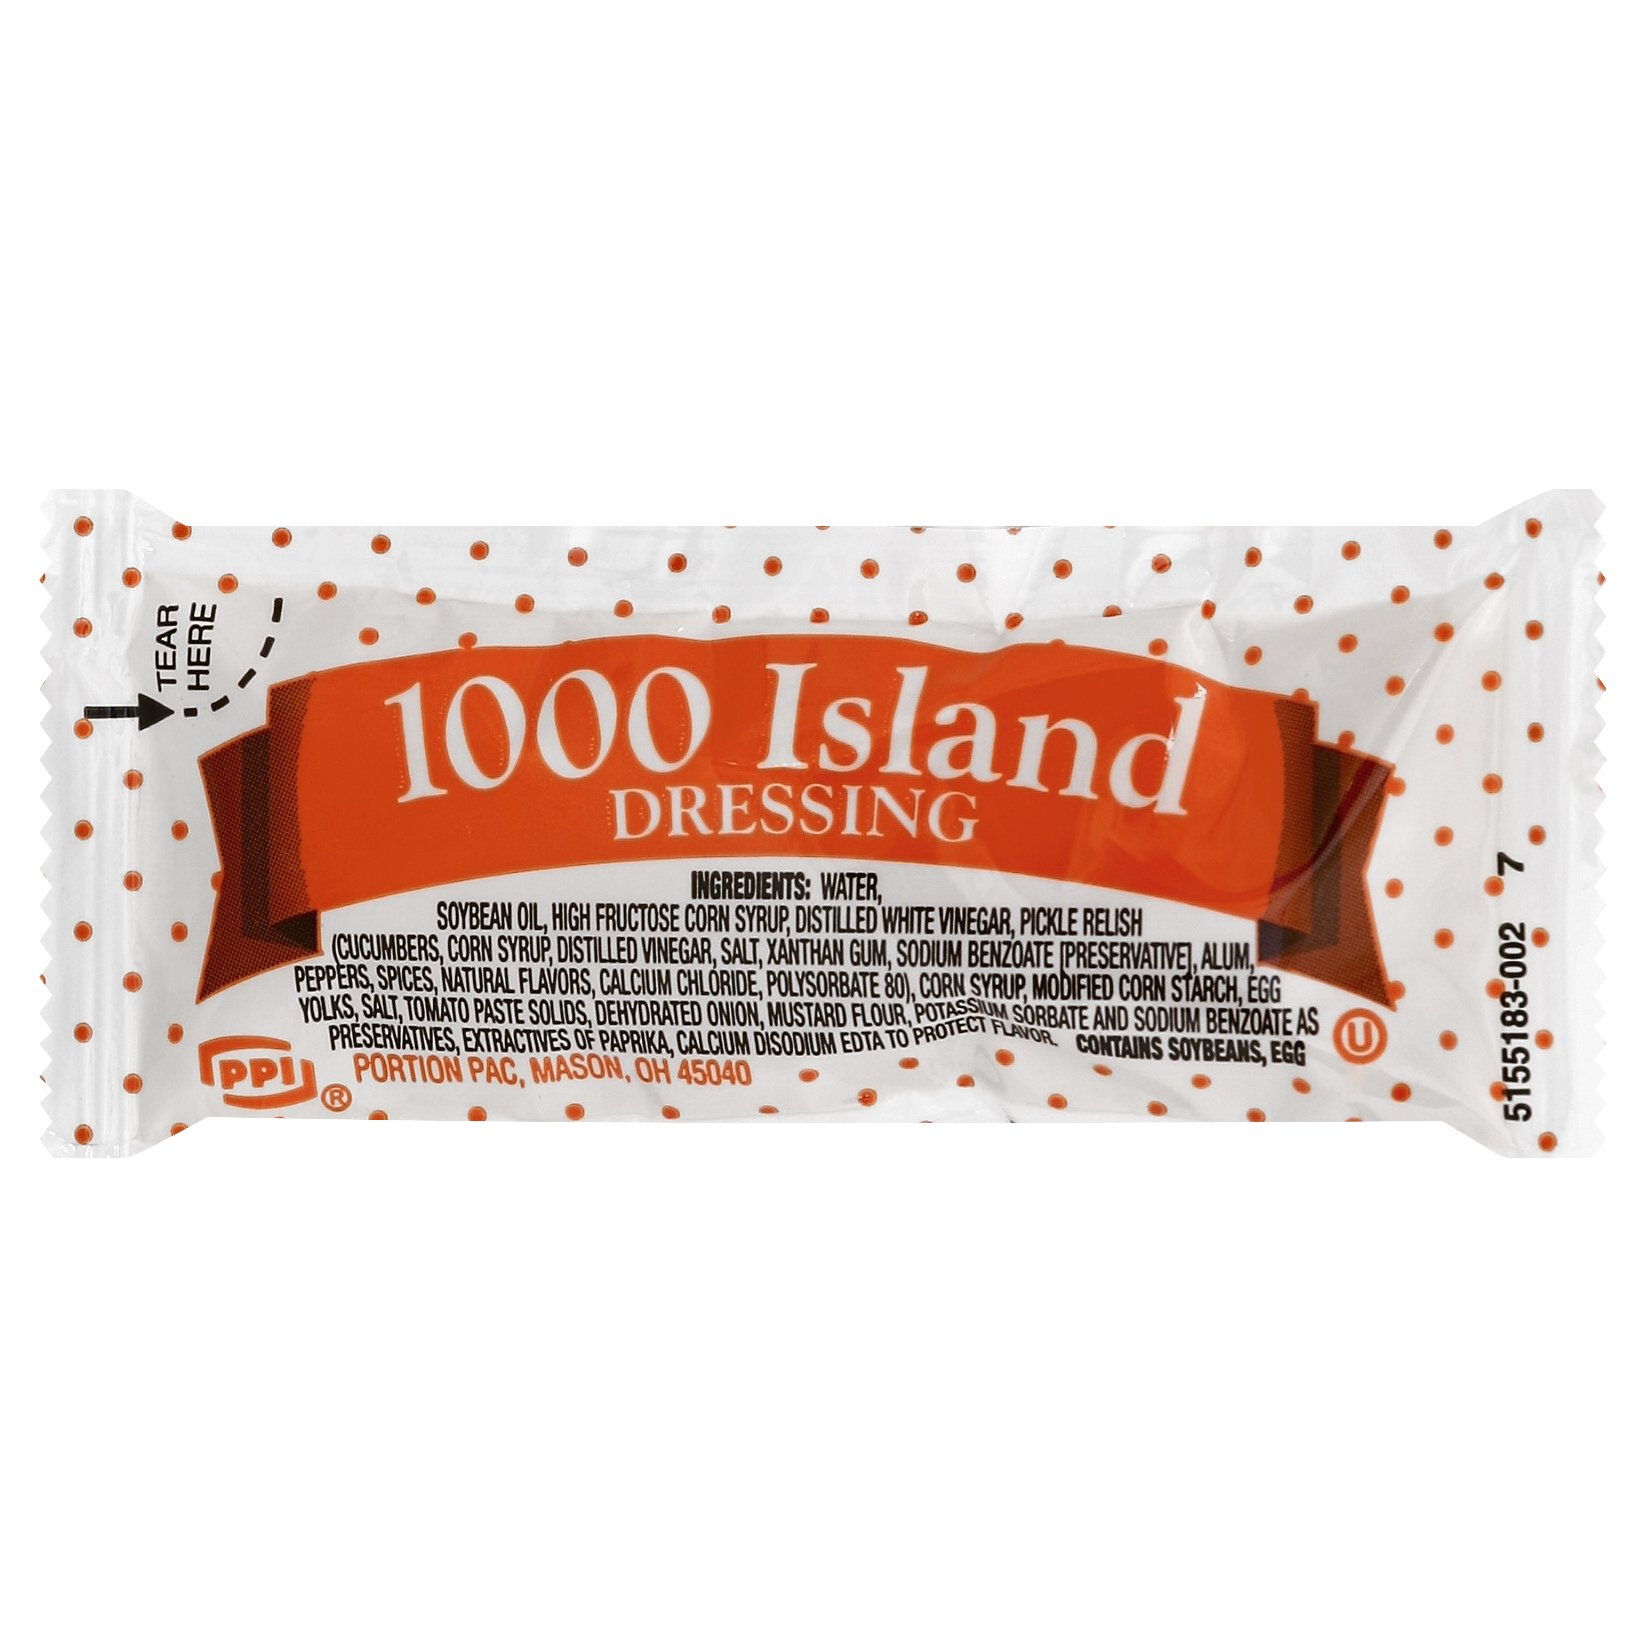 Portion Pack Dressing 1000 Island, 0.42-Ounce Single Serve Packages (Pack of 200)